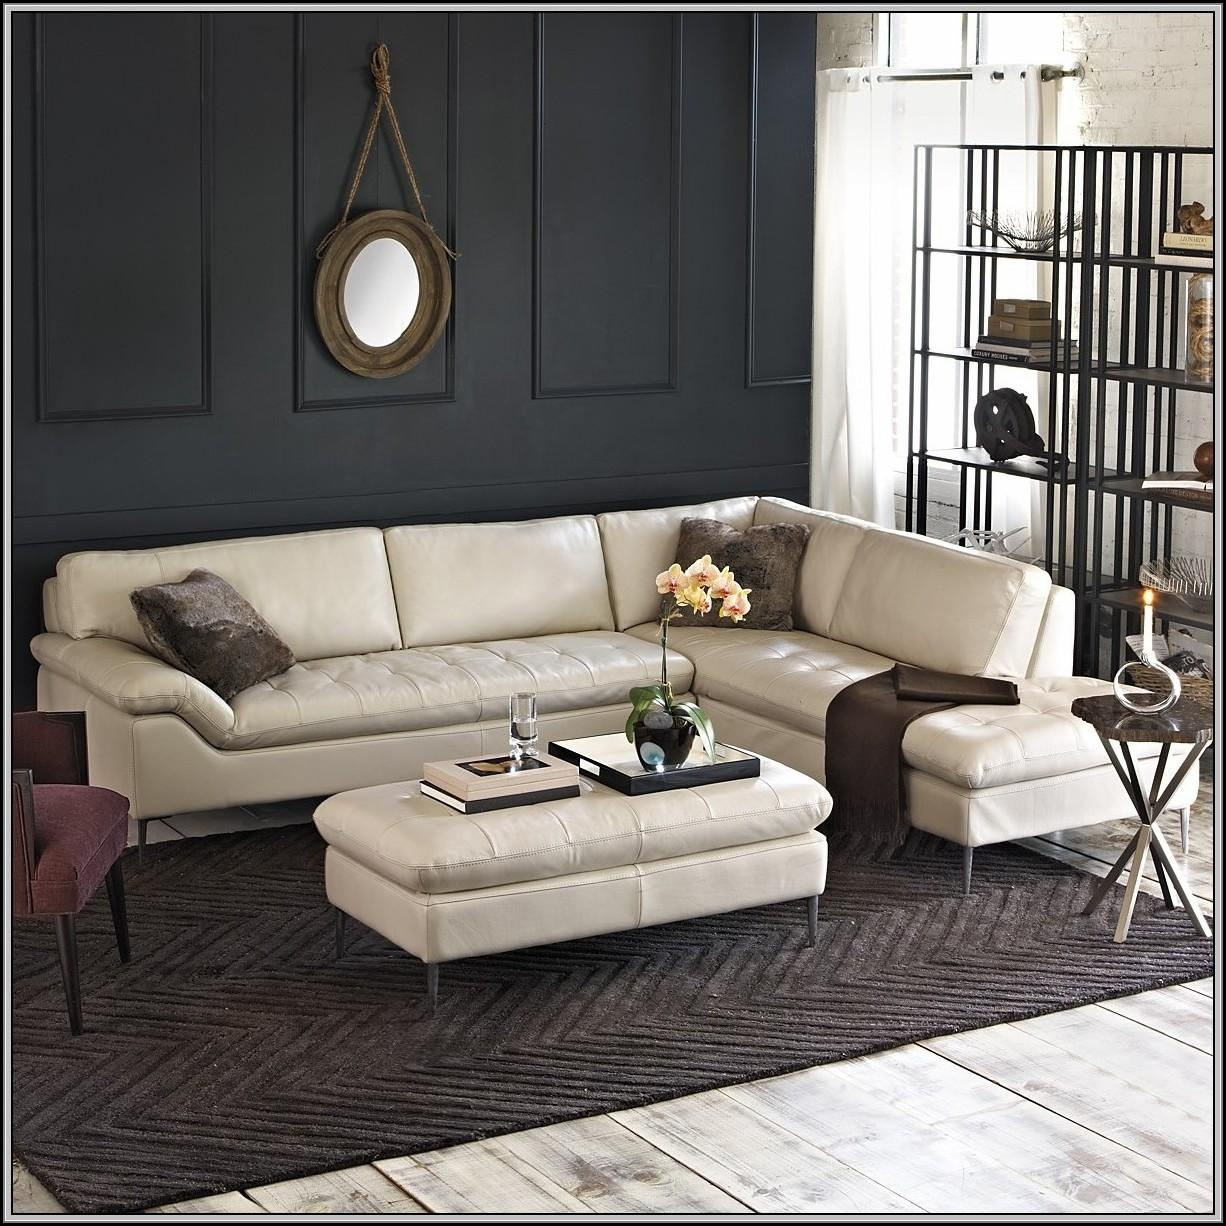 Chateau Dax Leather Sofa Bloomingdales – Sofa : Home Furniture Inside Bloomingdales Sofas (Image 20 of 20)